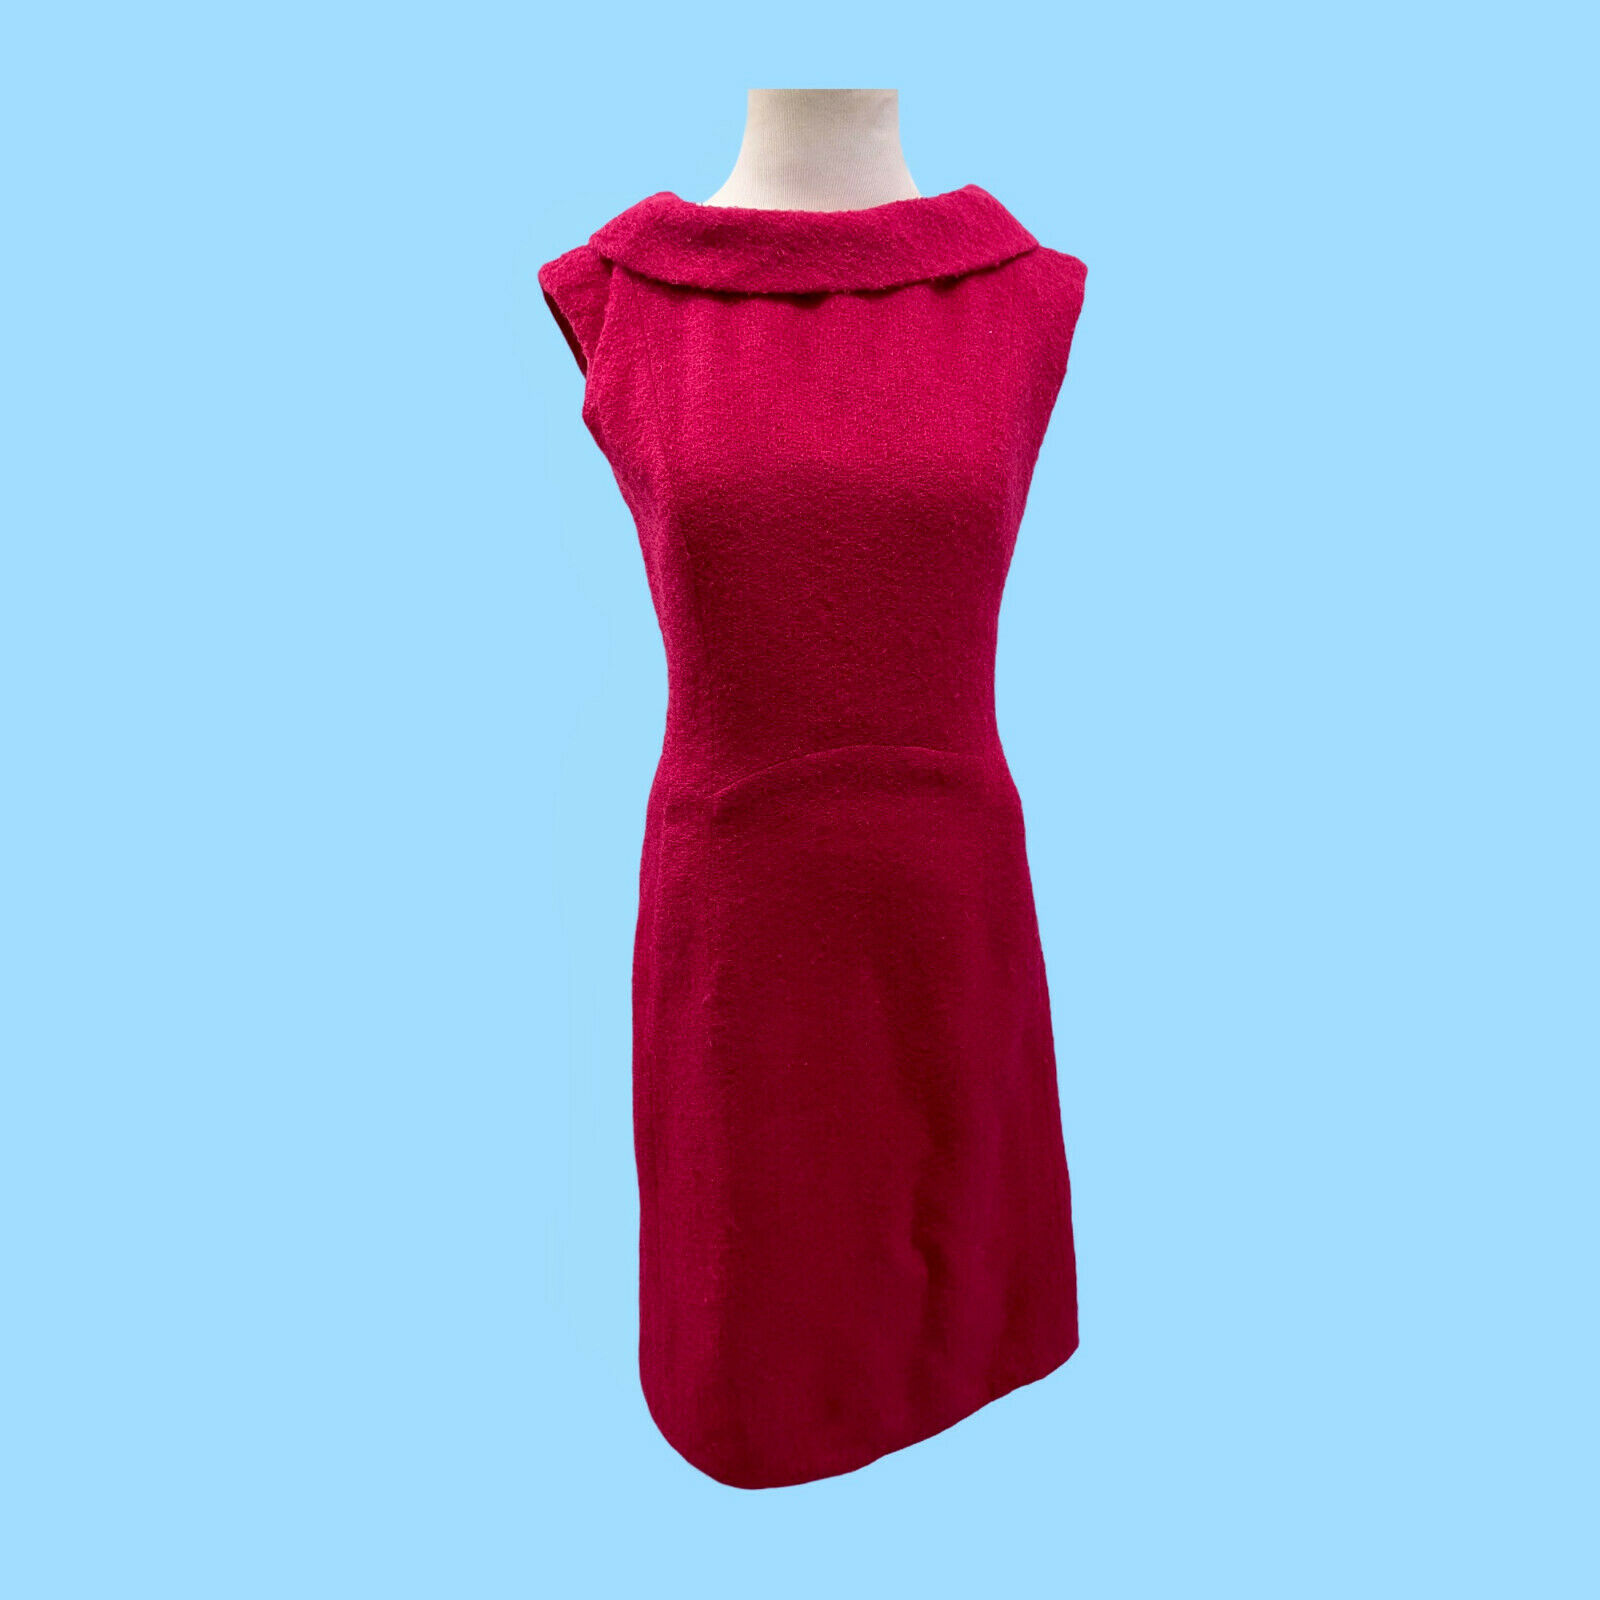 Vintage 1960's A-Line Red Dress W/ Reversed Peter Pan Collar Cocktail Party